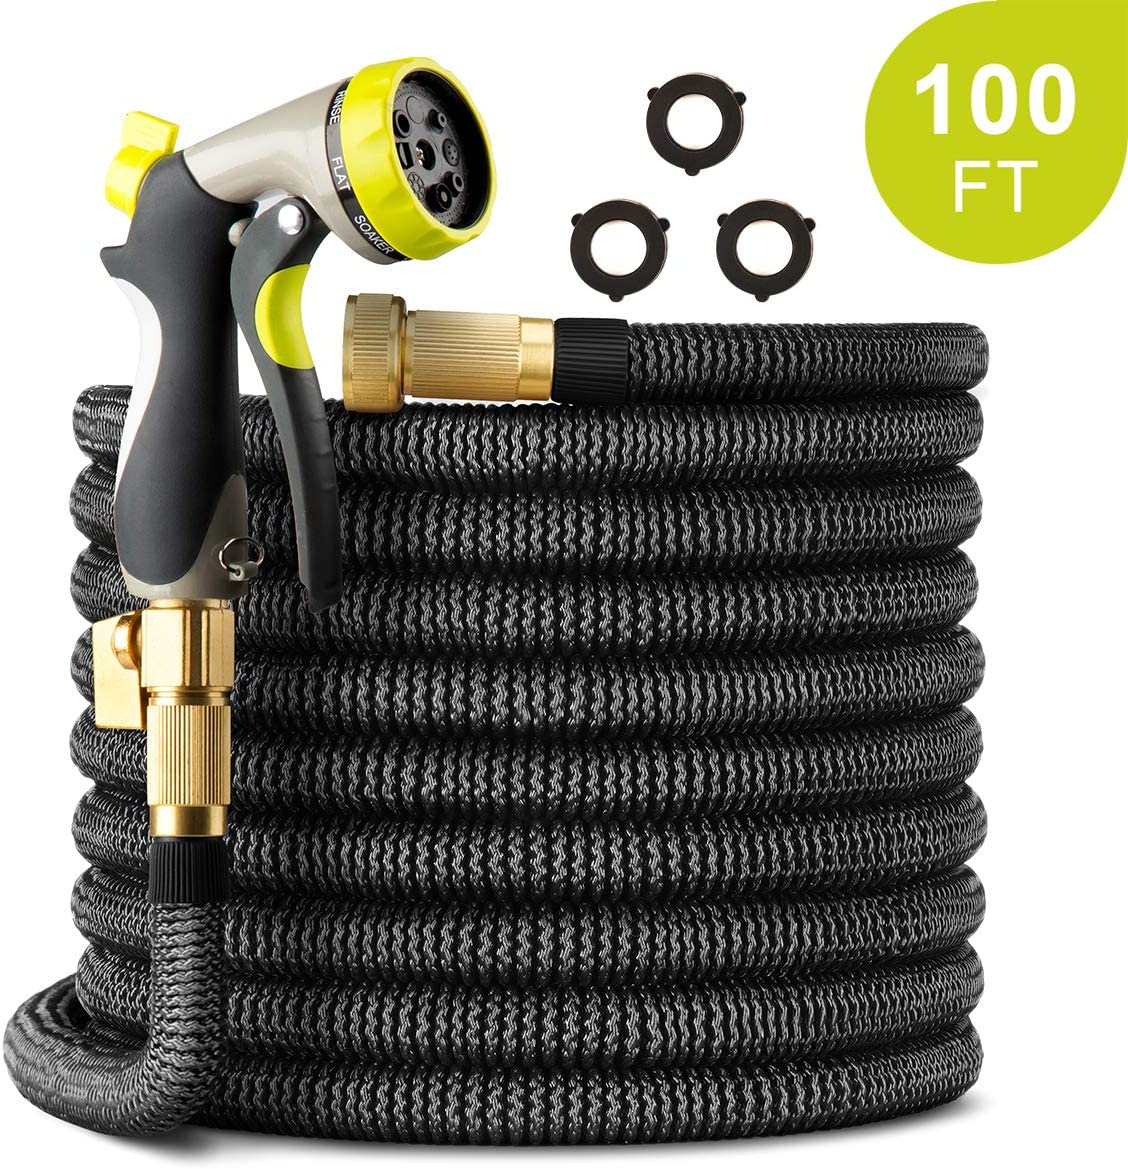 PAMAPIC 100 FT Expandable Garden Hose